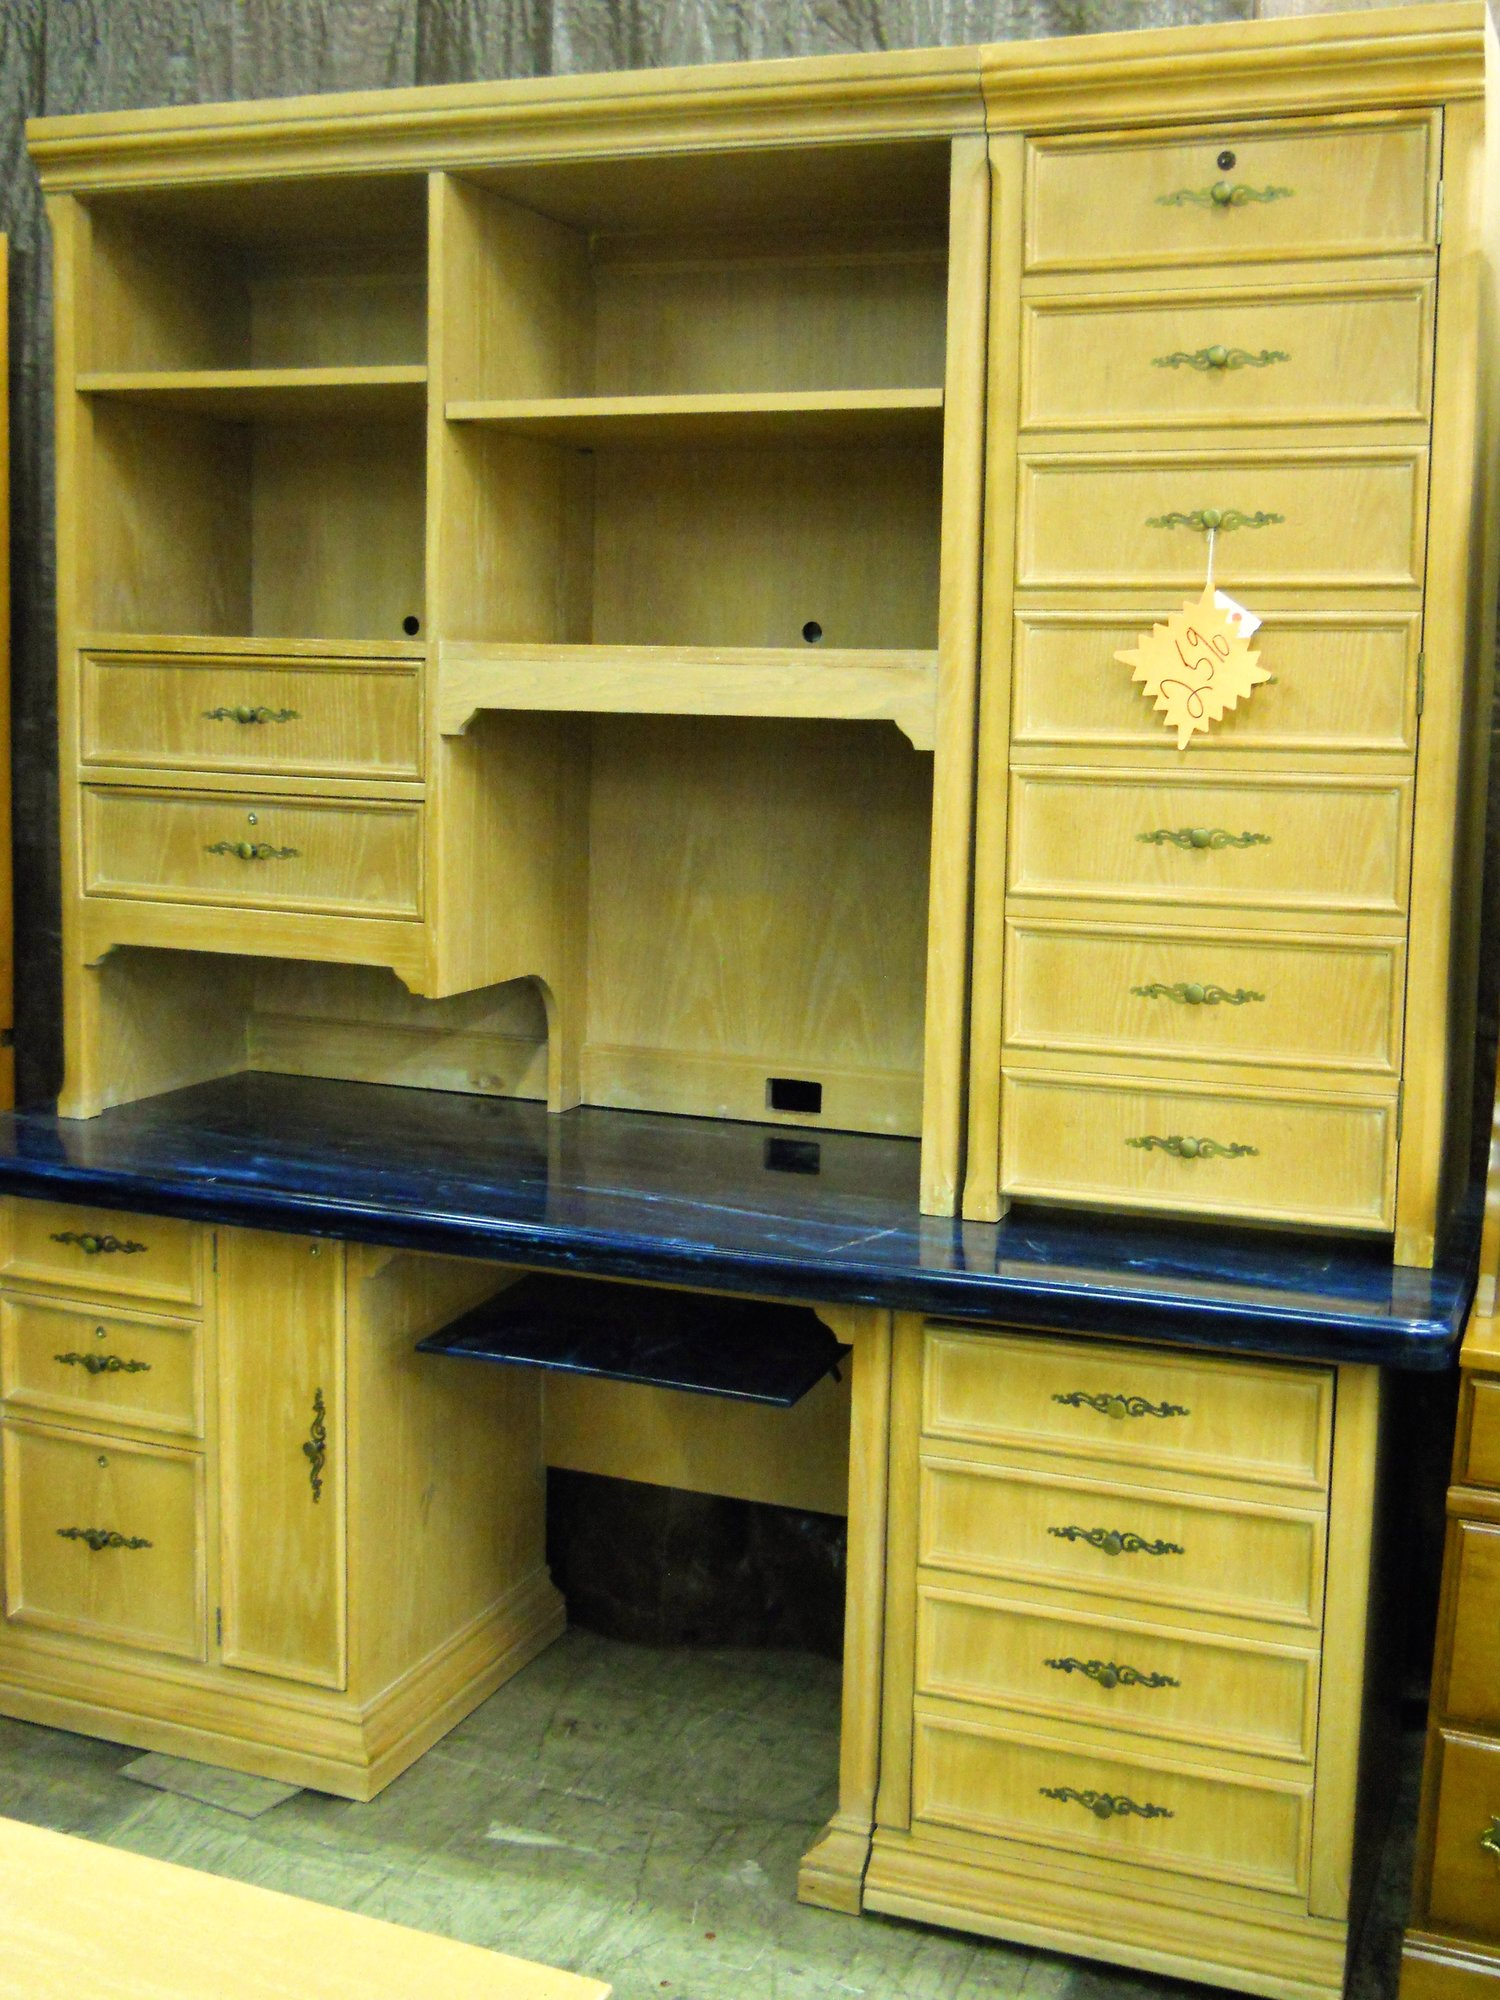 P1 11422 Heckman Desk Wall Unit With Keys Is Sold